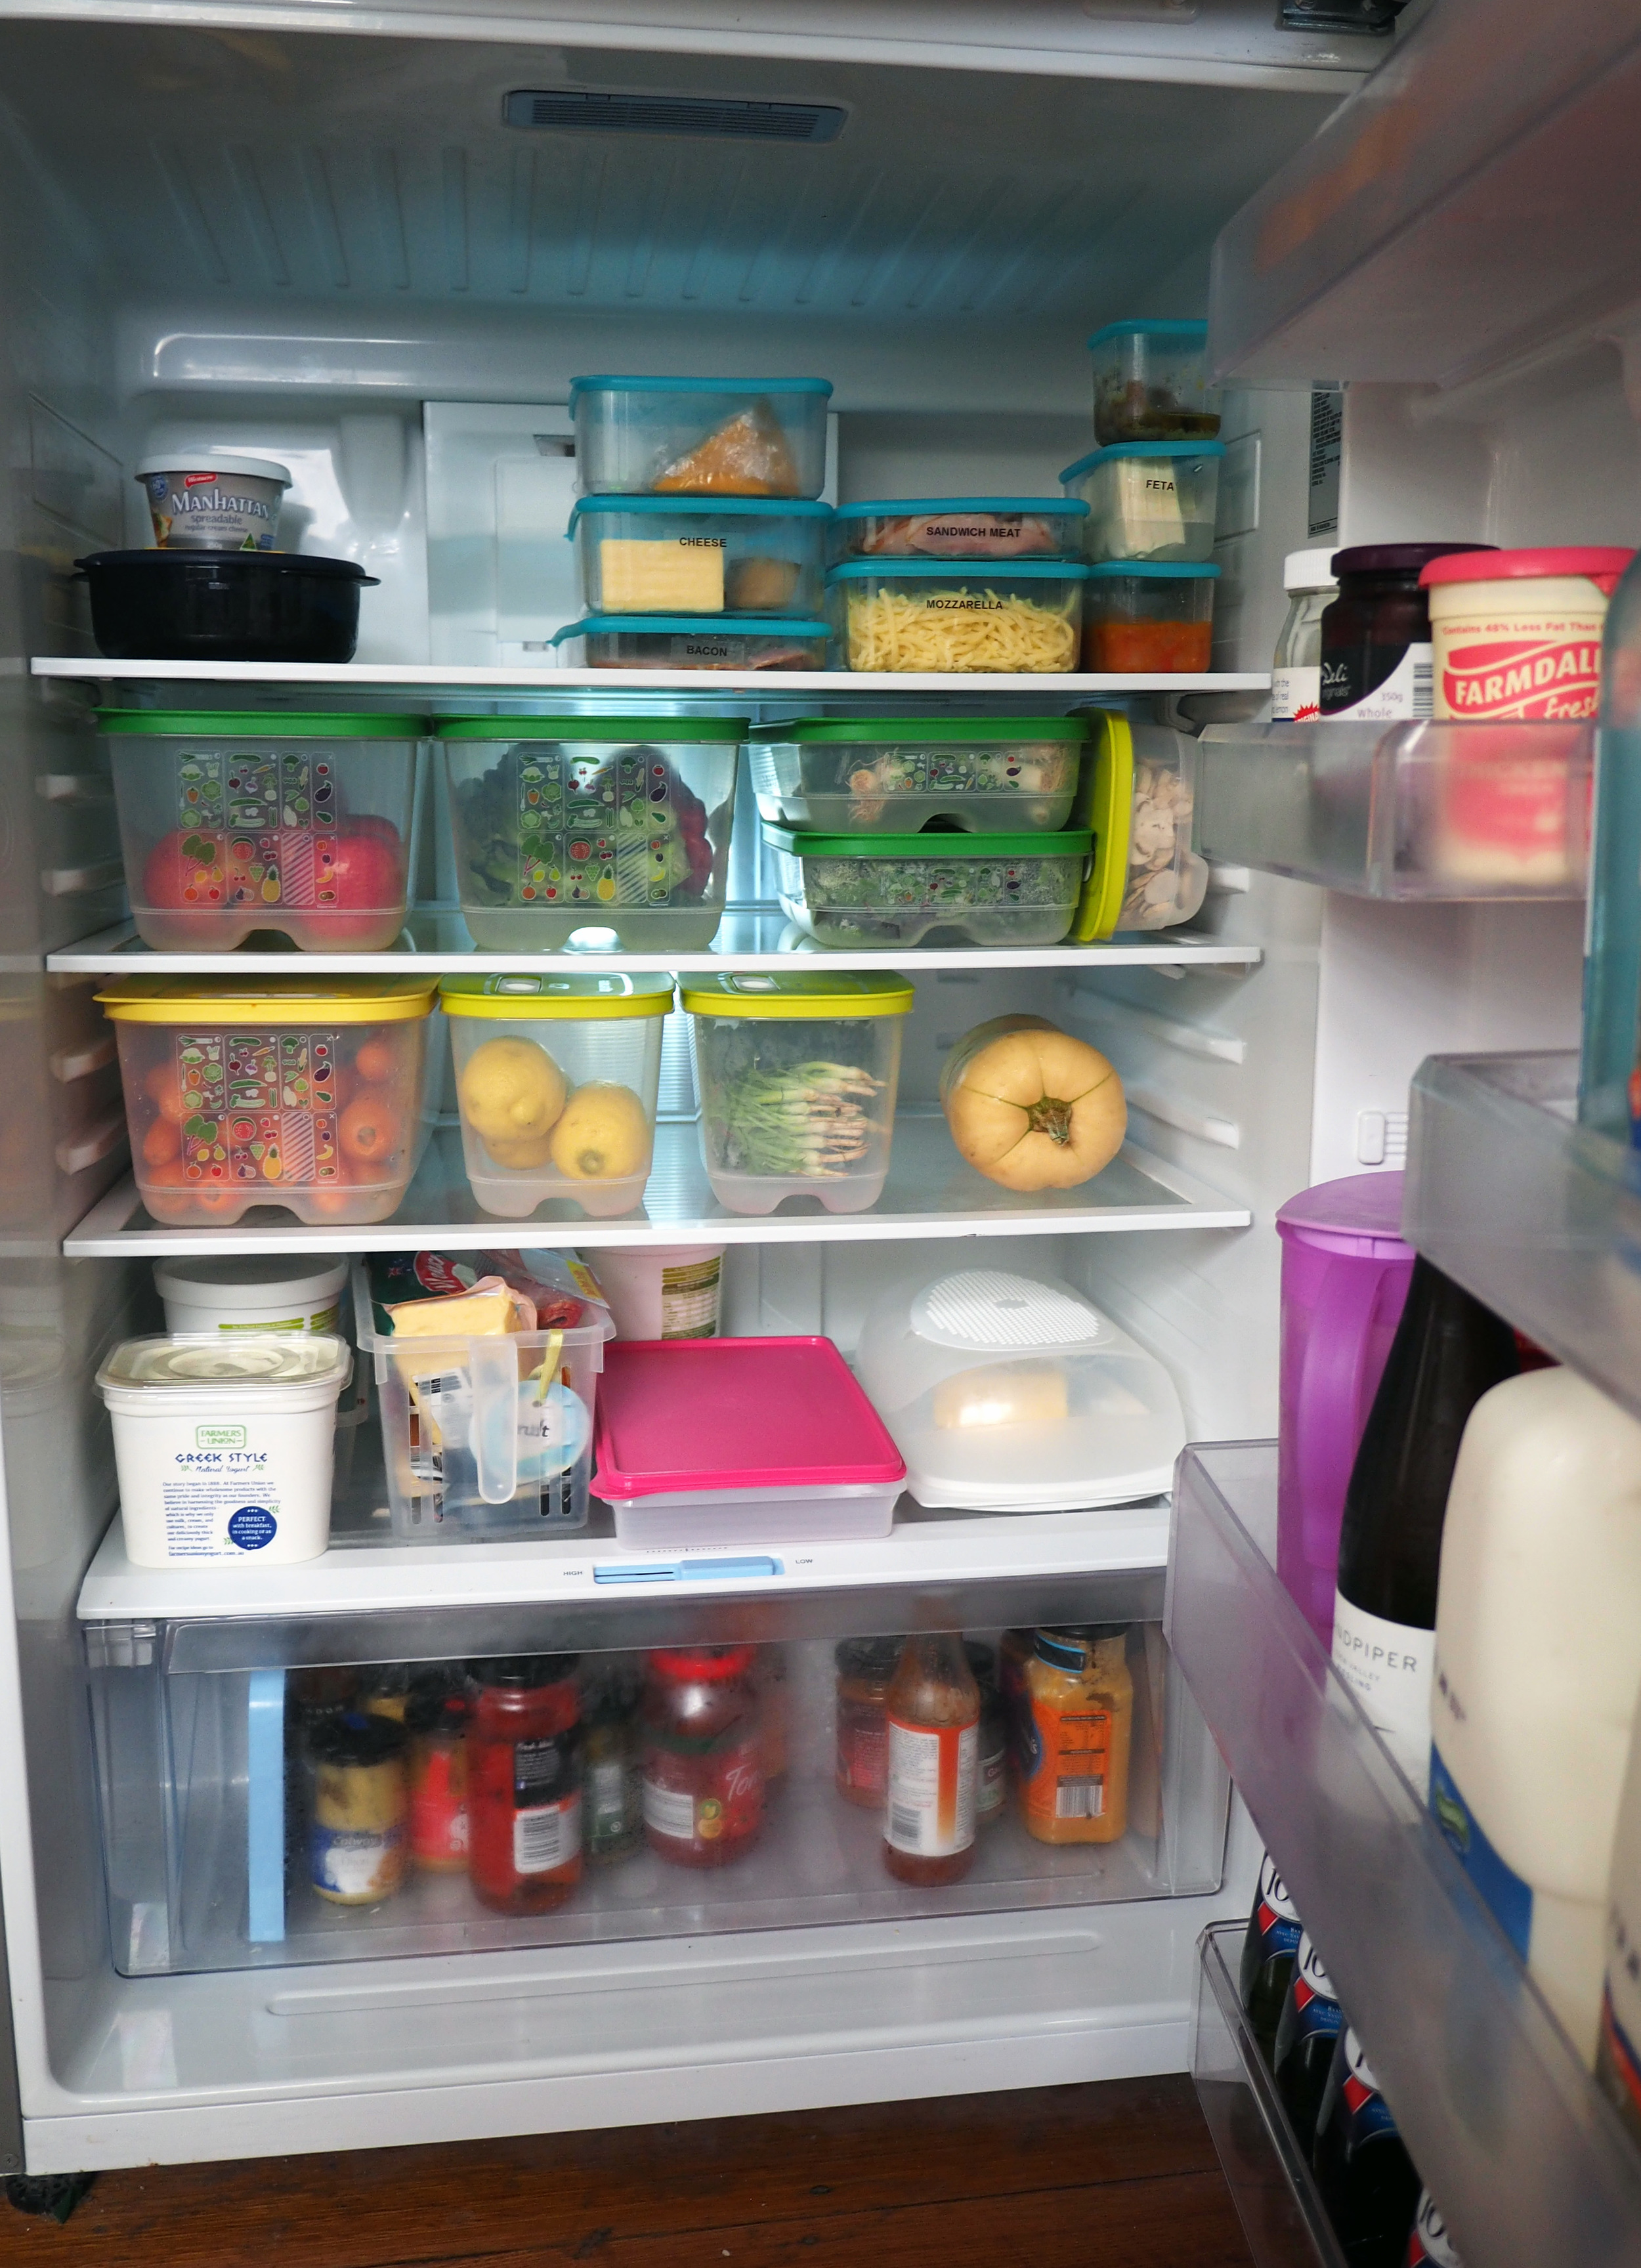 An organised fridge, using air-tight containers to seal and corral dairy items, and fruit and vegetable containers to ensure products last longer and everything is easy to find.